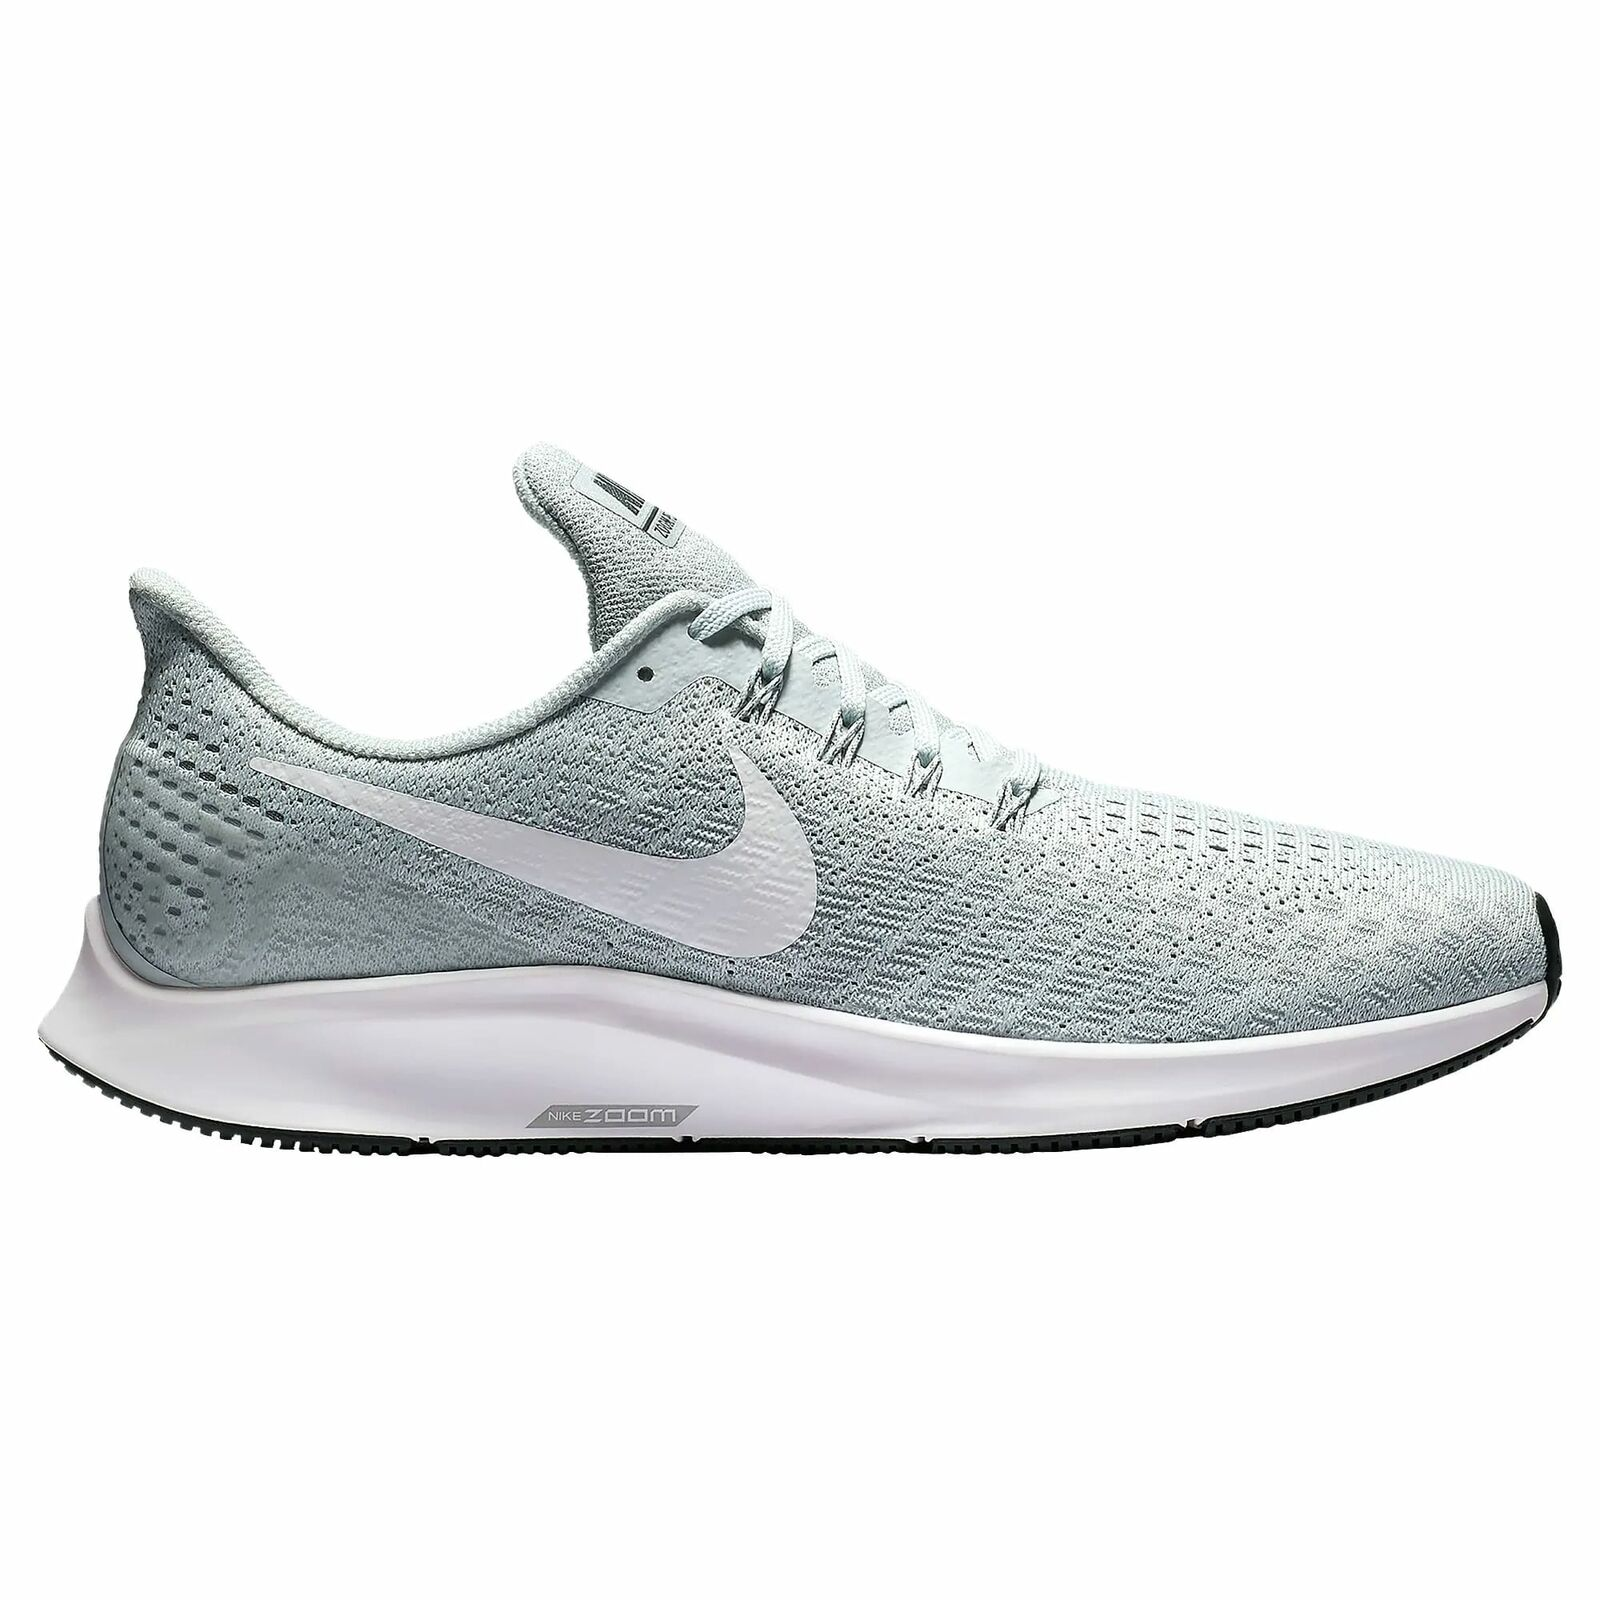 5d1395188fb88 Nike Air Zoom 35 Men s Pure White Wolf Grey Cool Grey 3905002 Pegasus  Platinum nwdnog10523-Athletic Shoes - sandals.silverlakechildrens.com